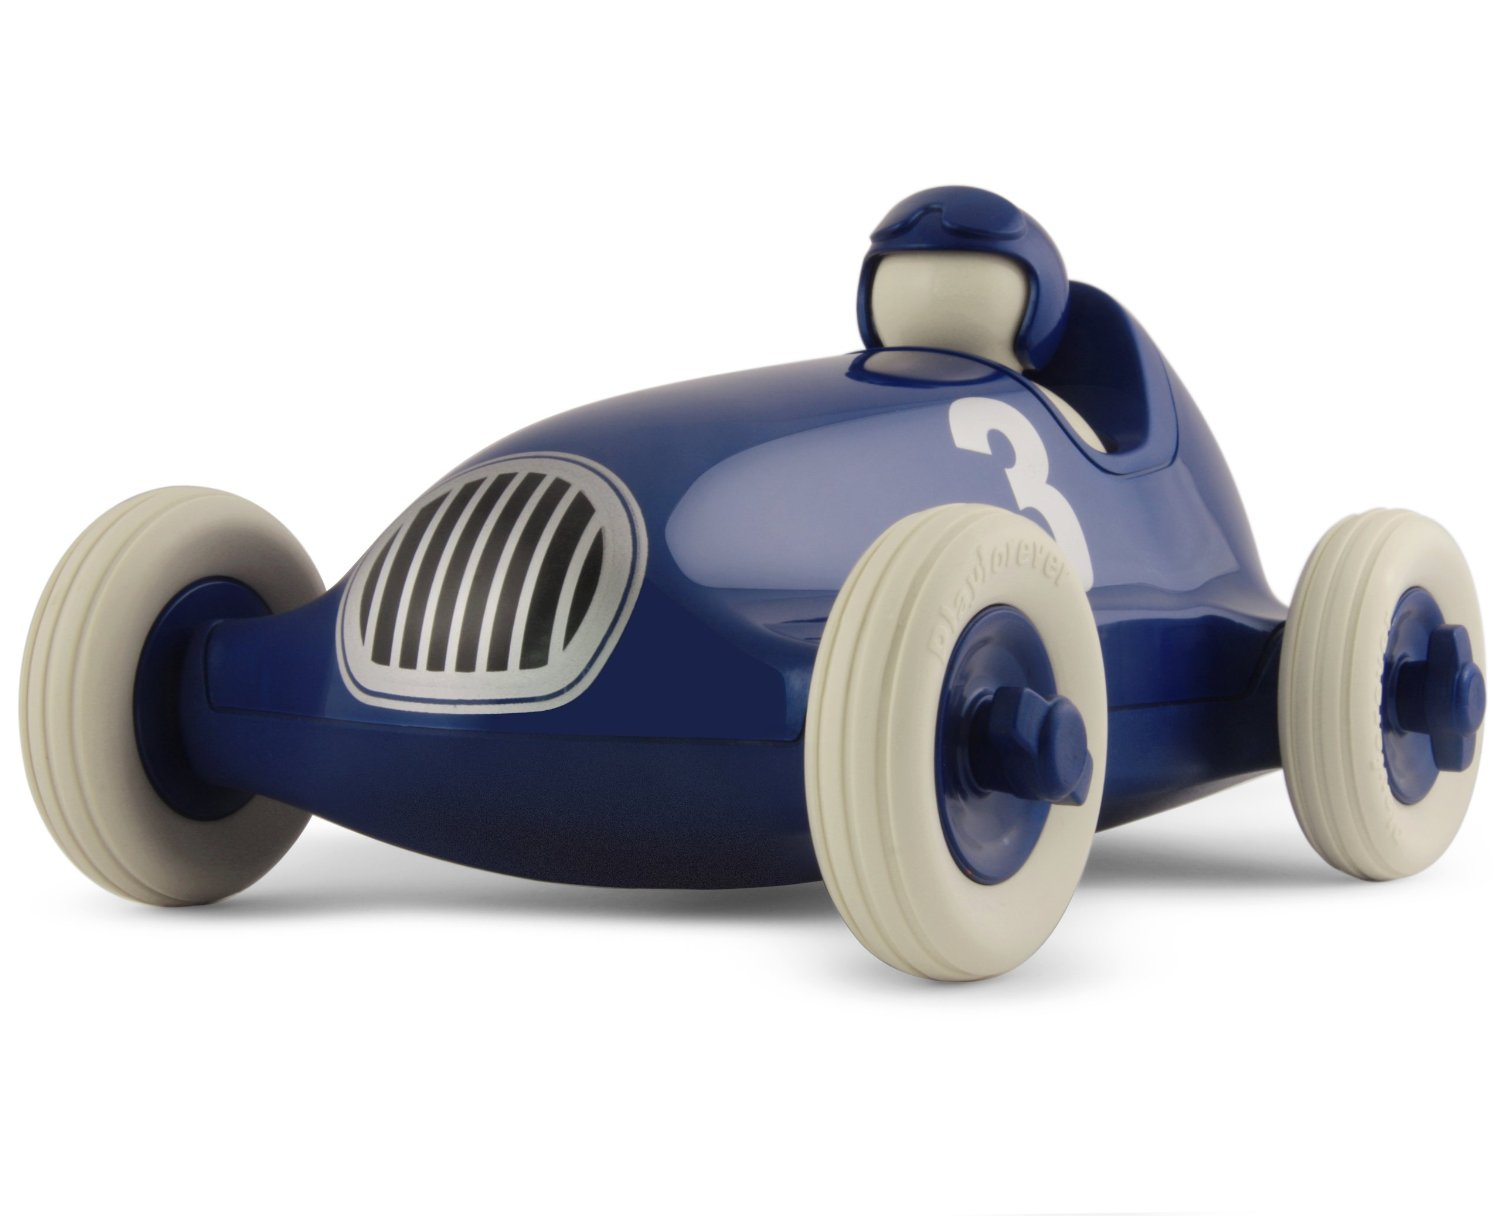 mad for midcentury midcentury modern toy cars - midcentury modern toy cars